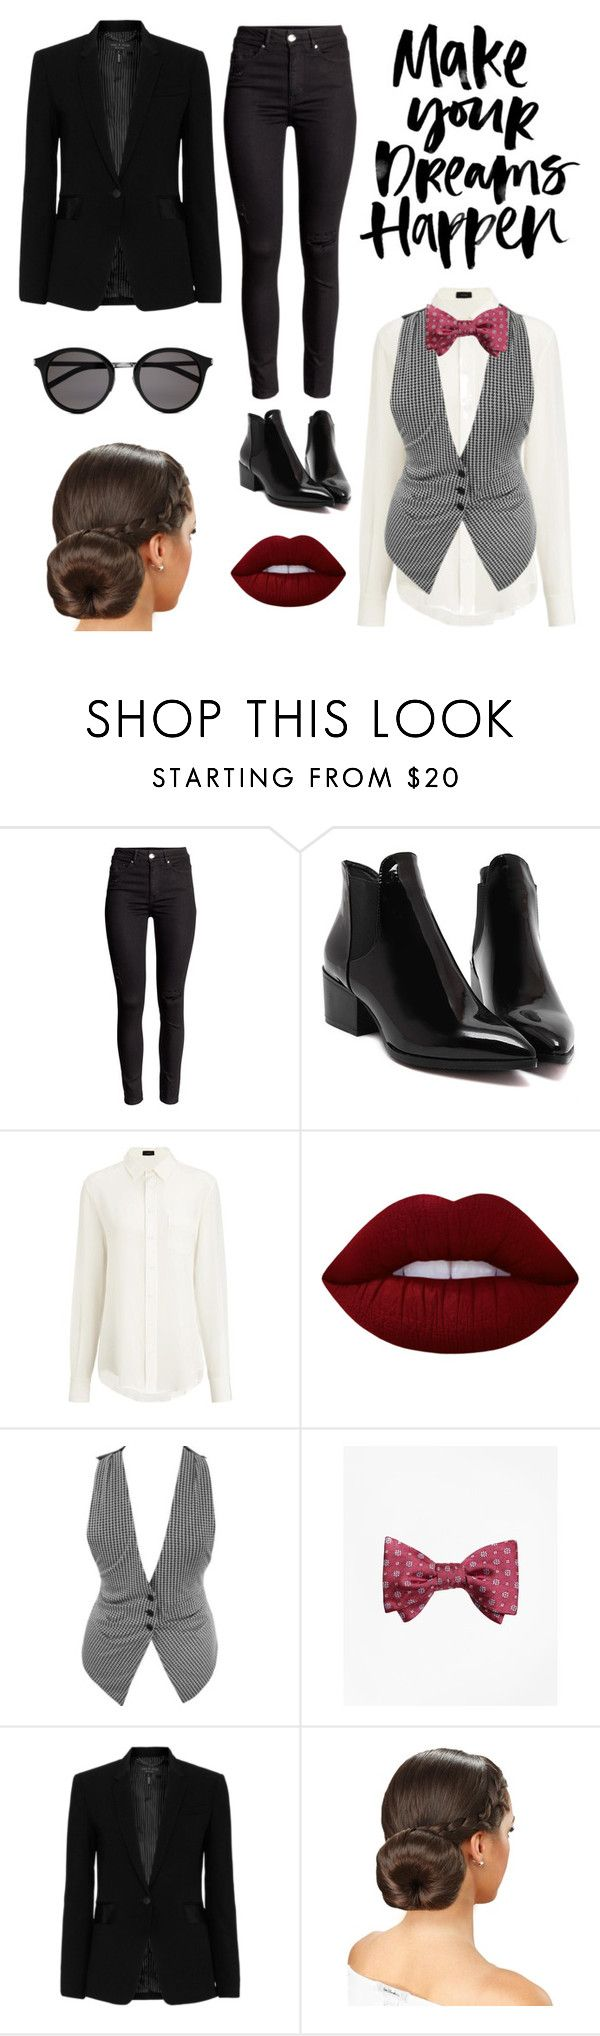 """Slick bowtie work outfit"" by shop-styleloft on Polyvore featuring Joseph, Lime Crime, Brooks Brothers, rag & bone and Yves Saint Laurent"